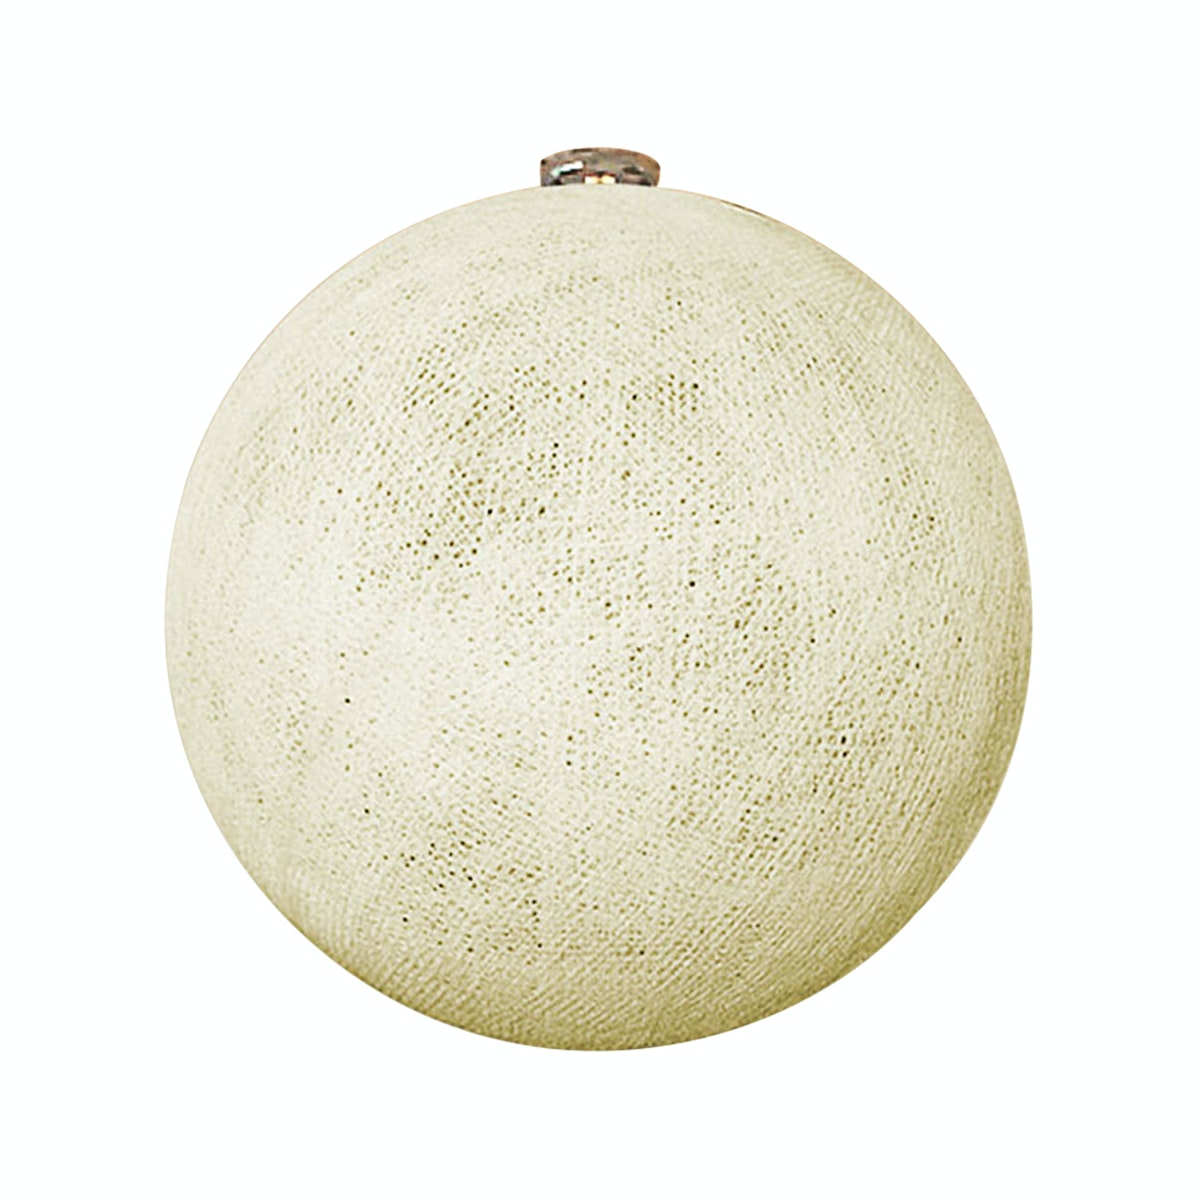 "Lightcraft Indonesia Big Cotton Ball 10"" Ivory"